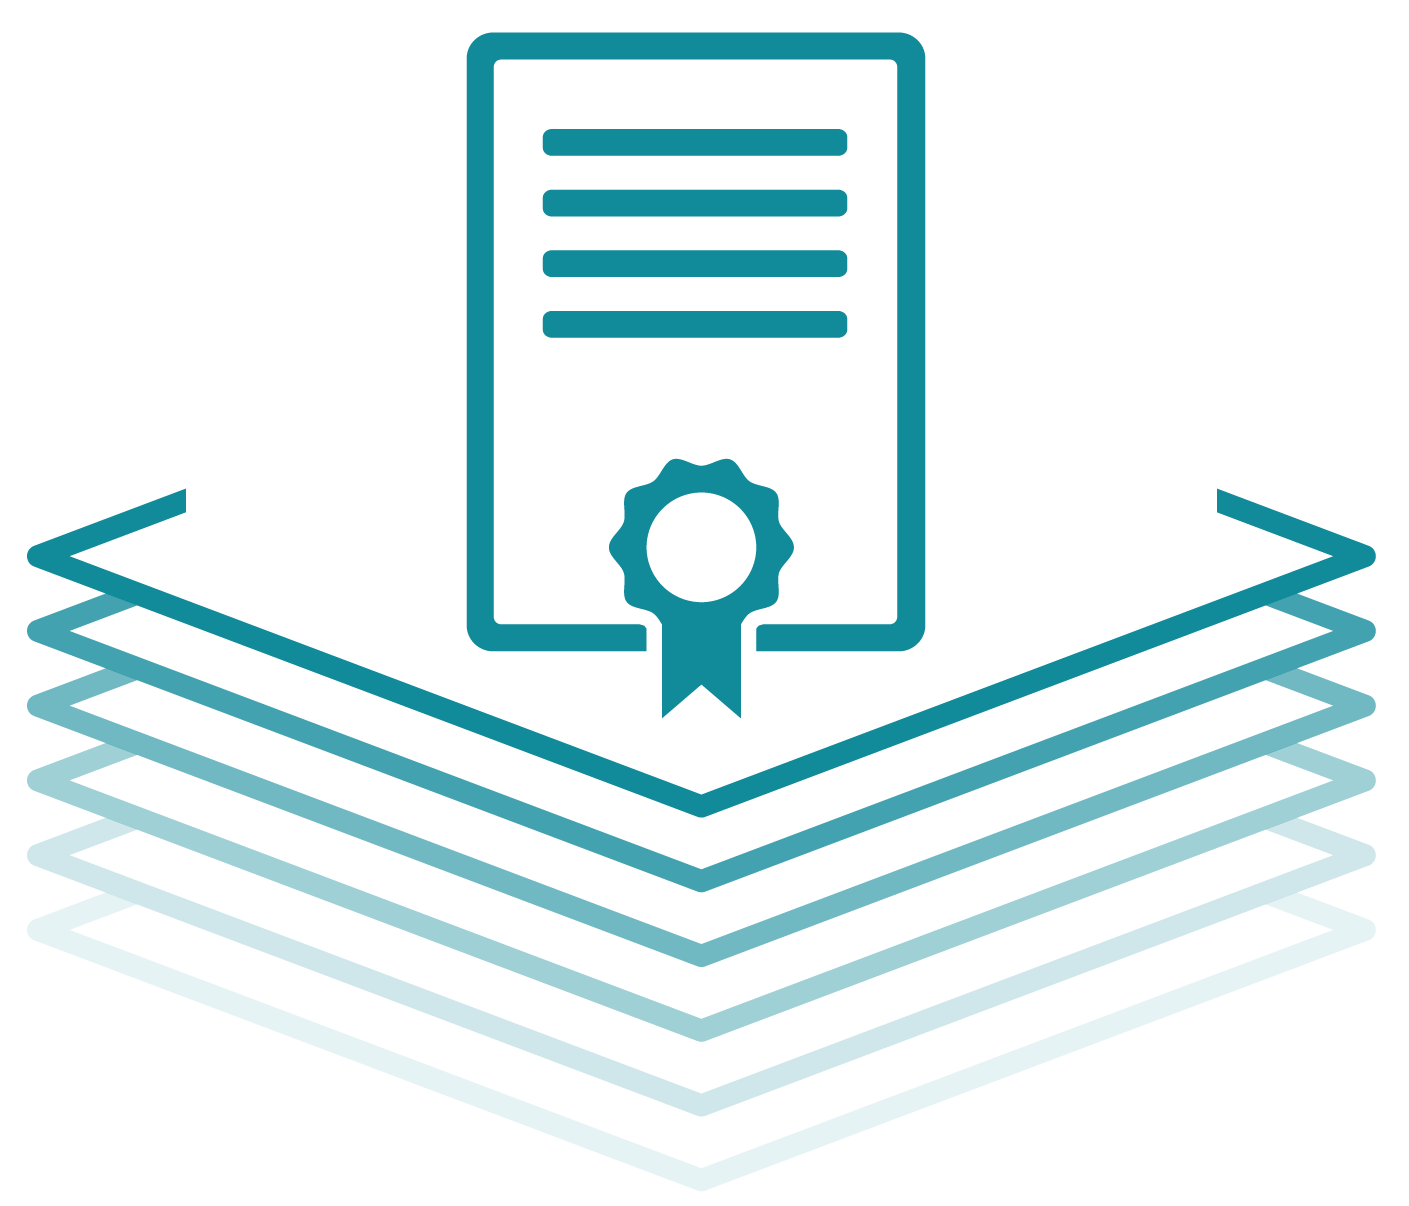 Brifed-certification-blue.png